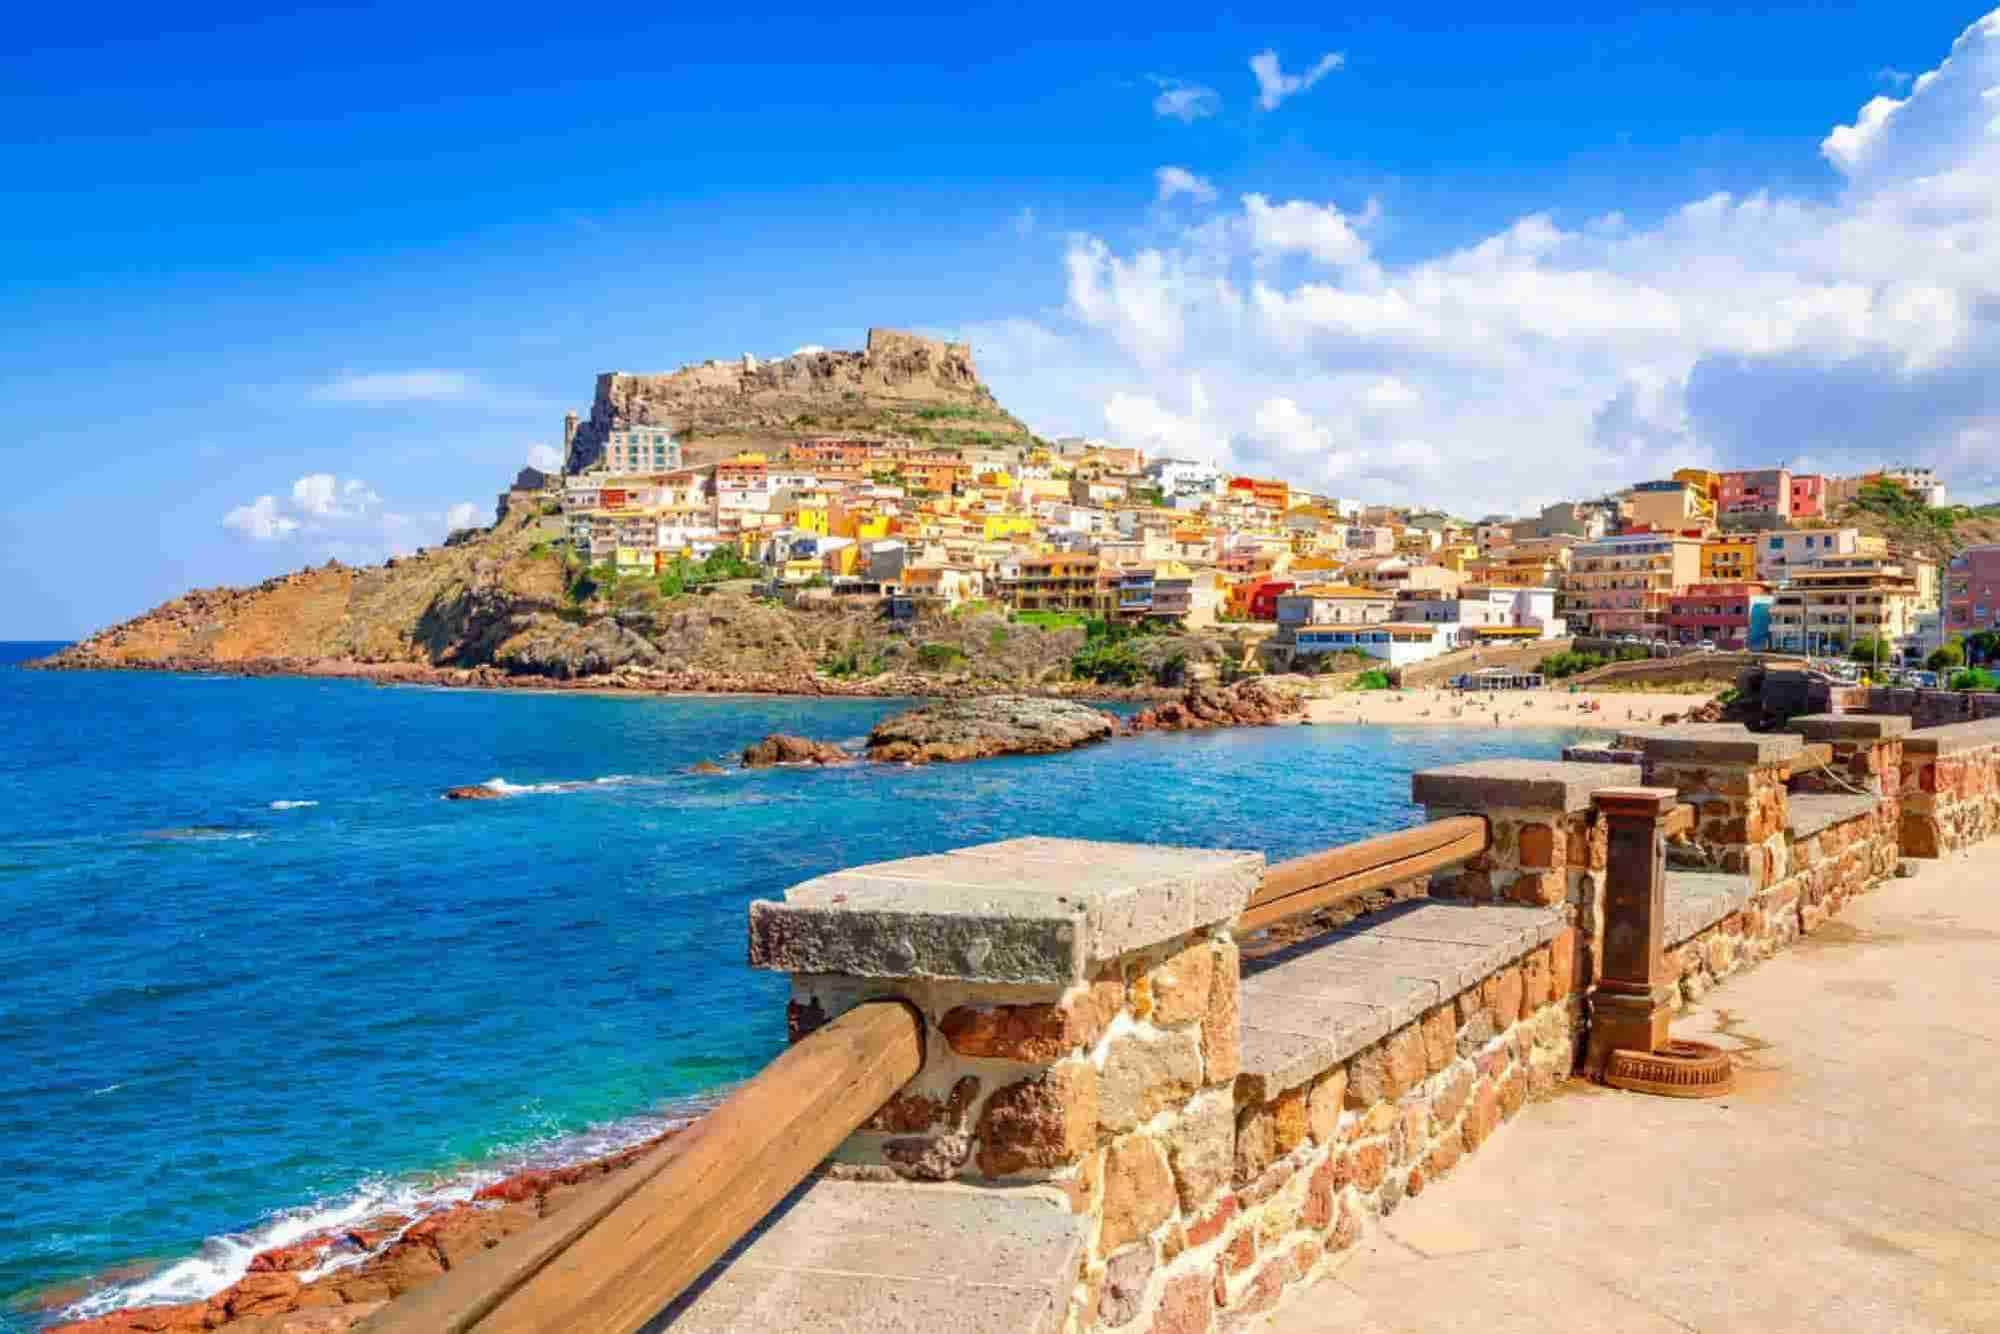 The area of Sassari is beautiful and the best ending to a Sardinia road trip